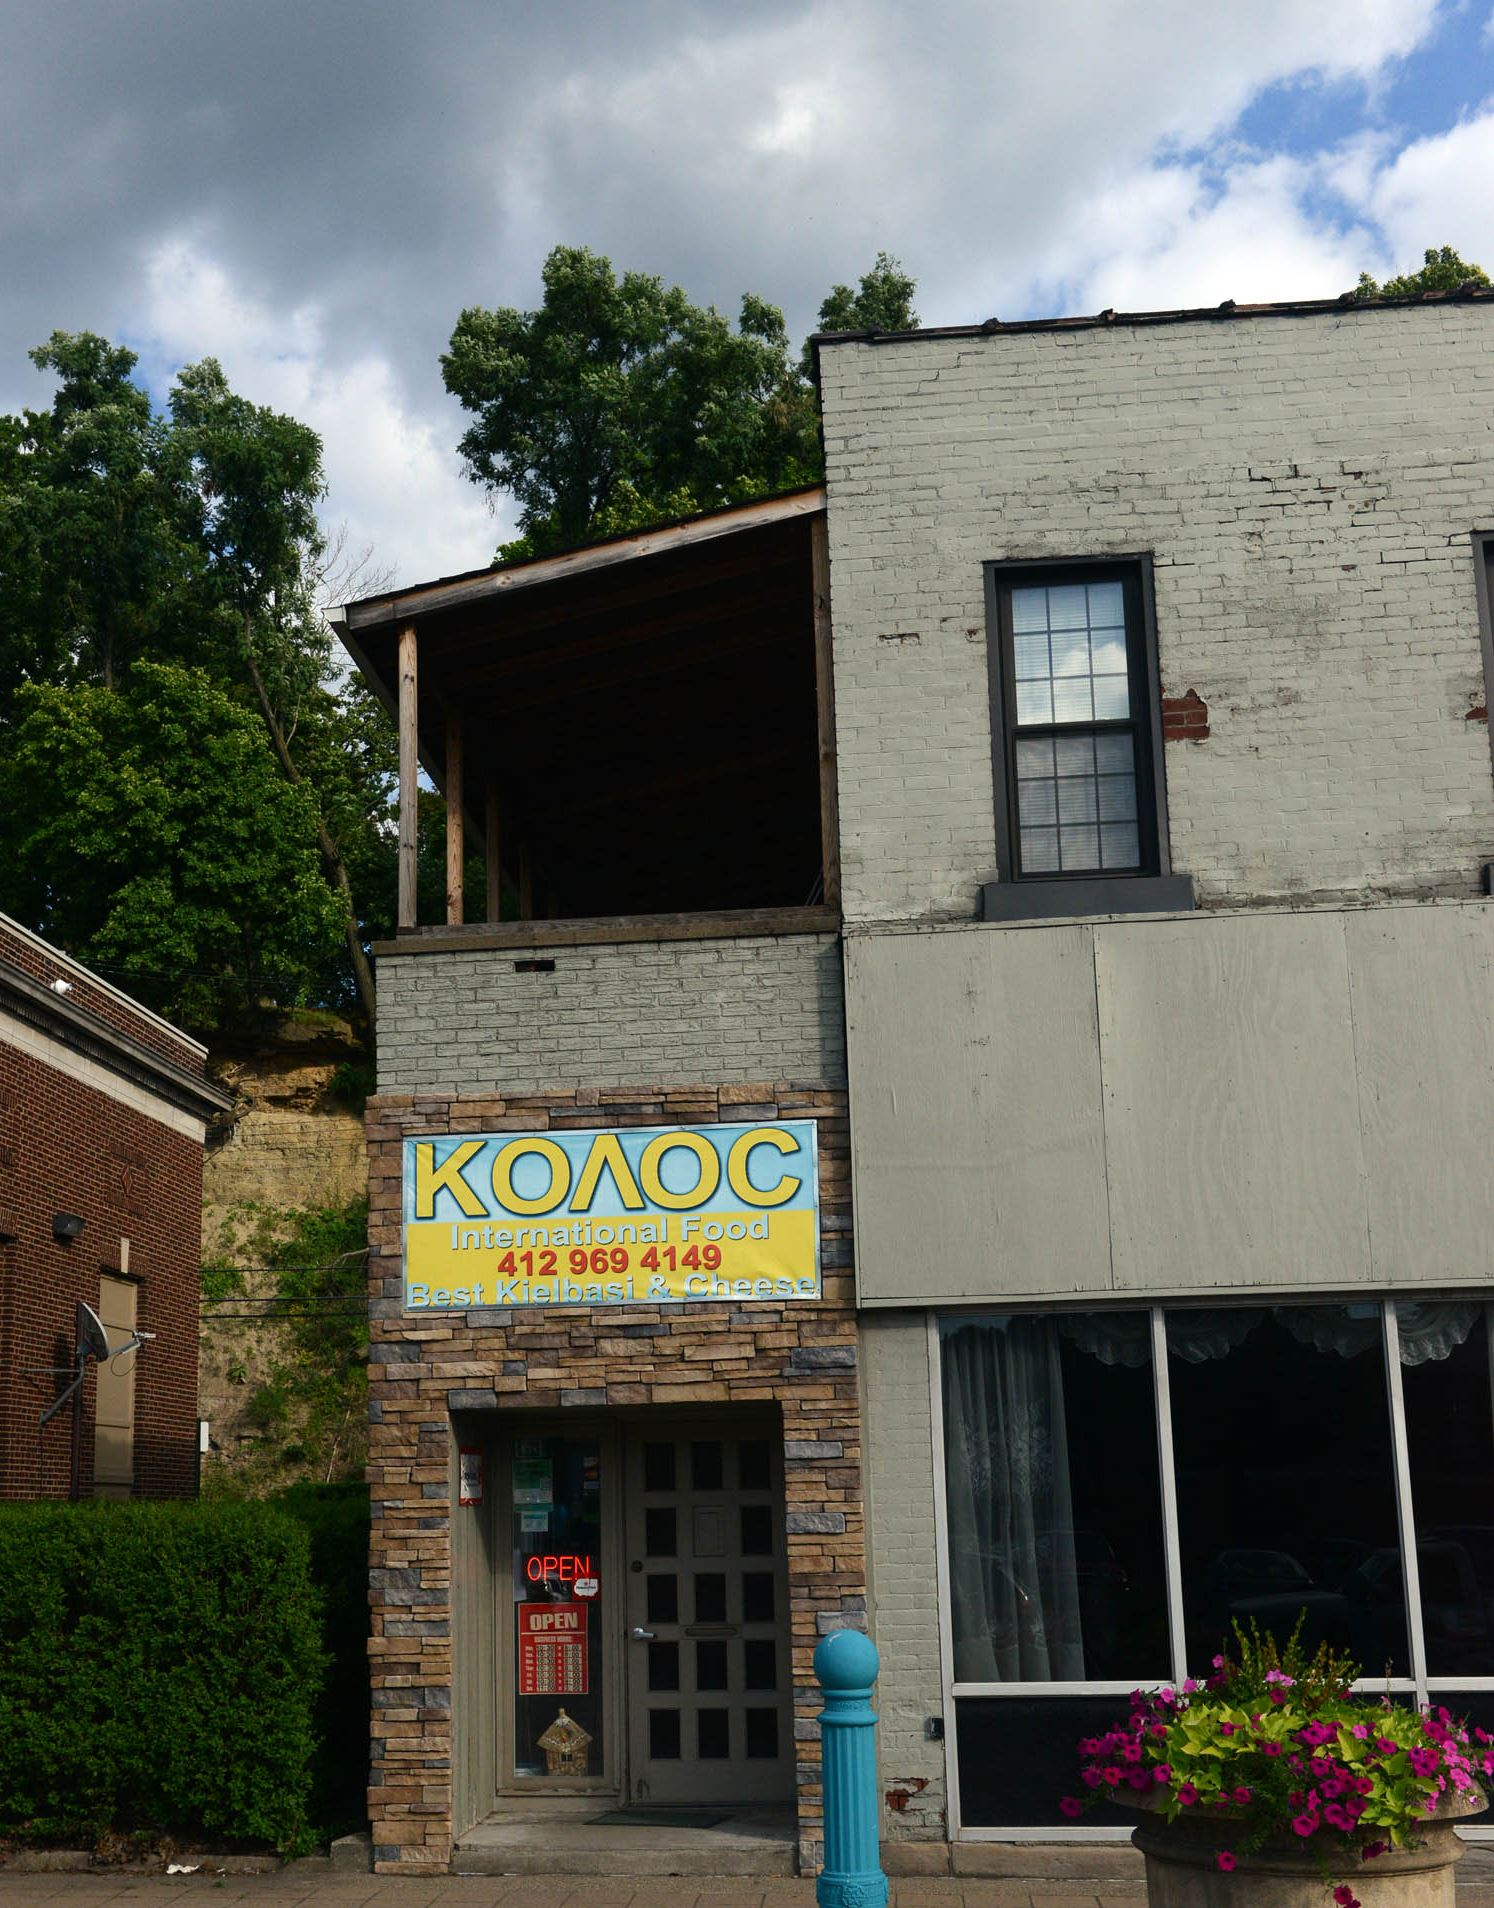 20140724MWHcarnegieFood07-6 The exterior of Kolos International Food on Main Street in Carnegie.